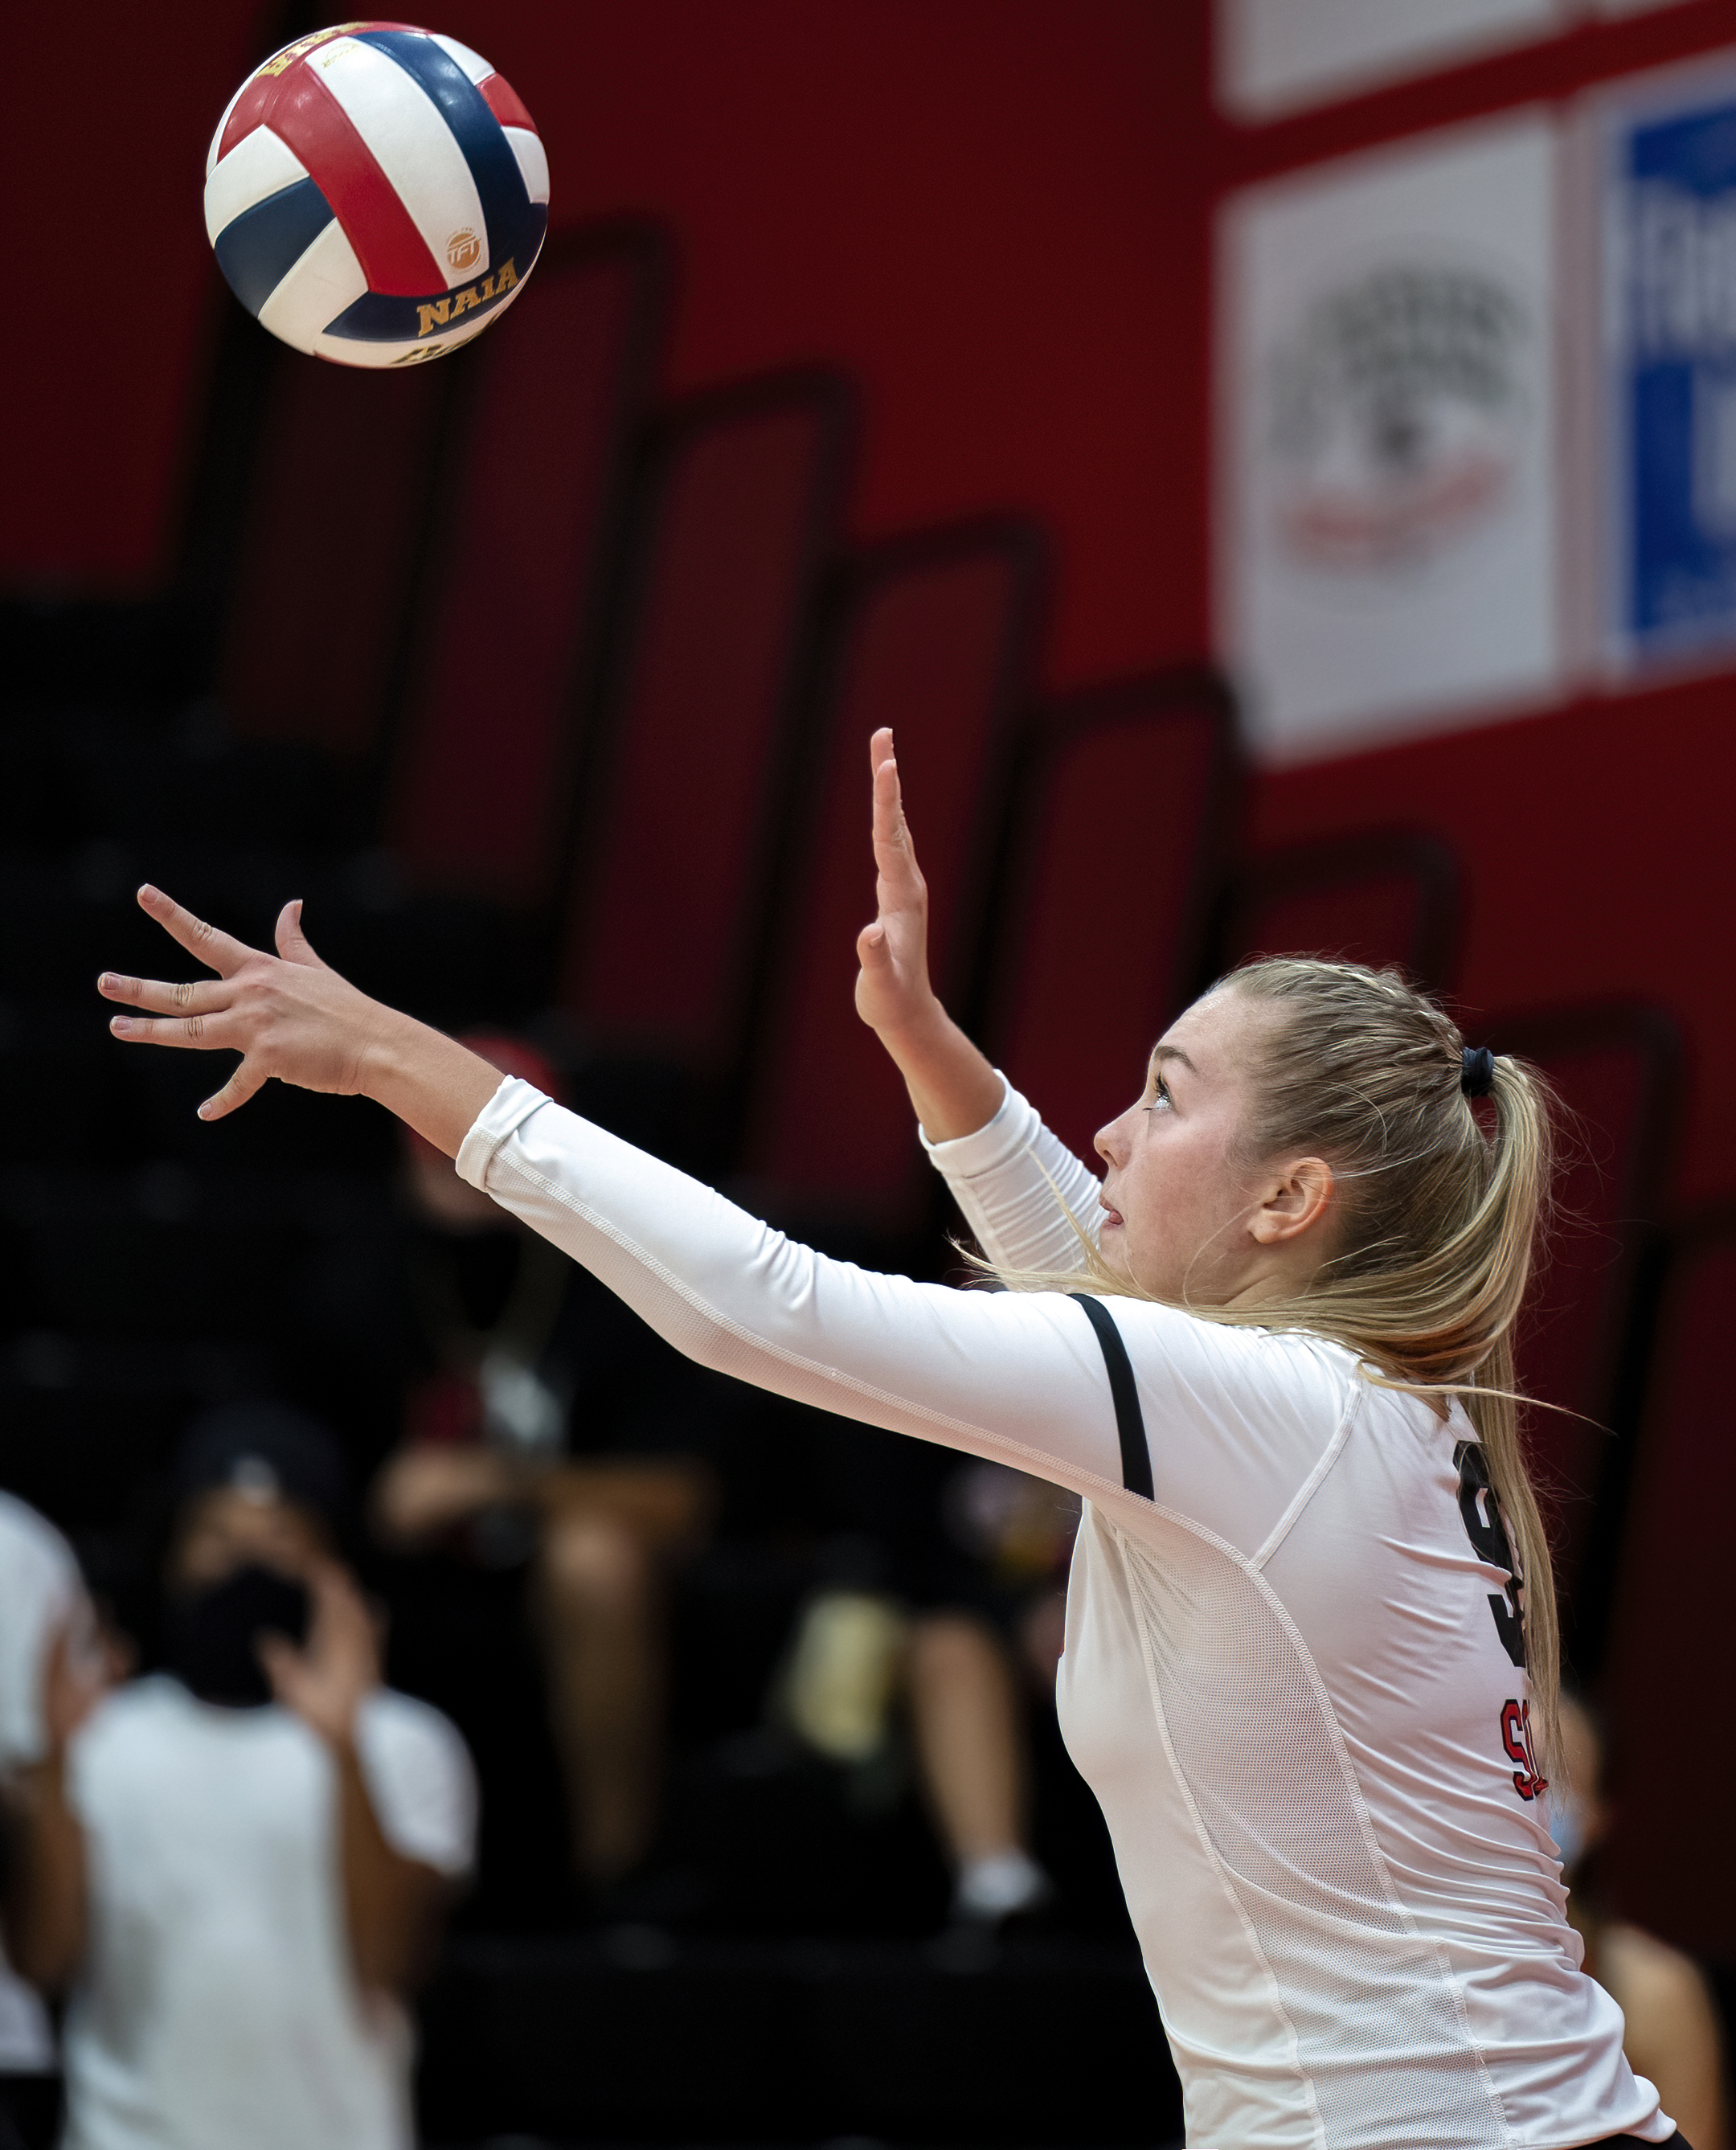 sou volleyball Taylor Russell topaz denoise ai-low-light